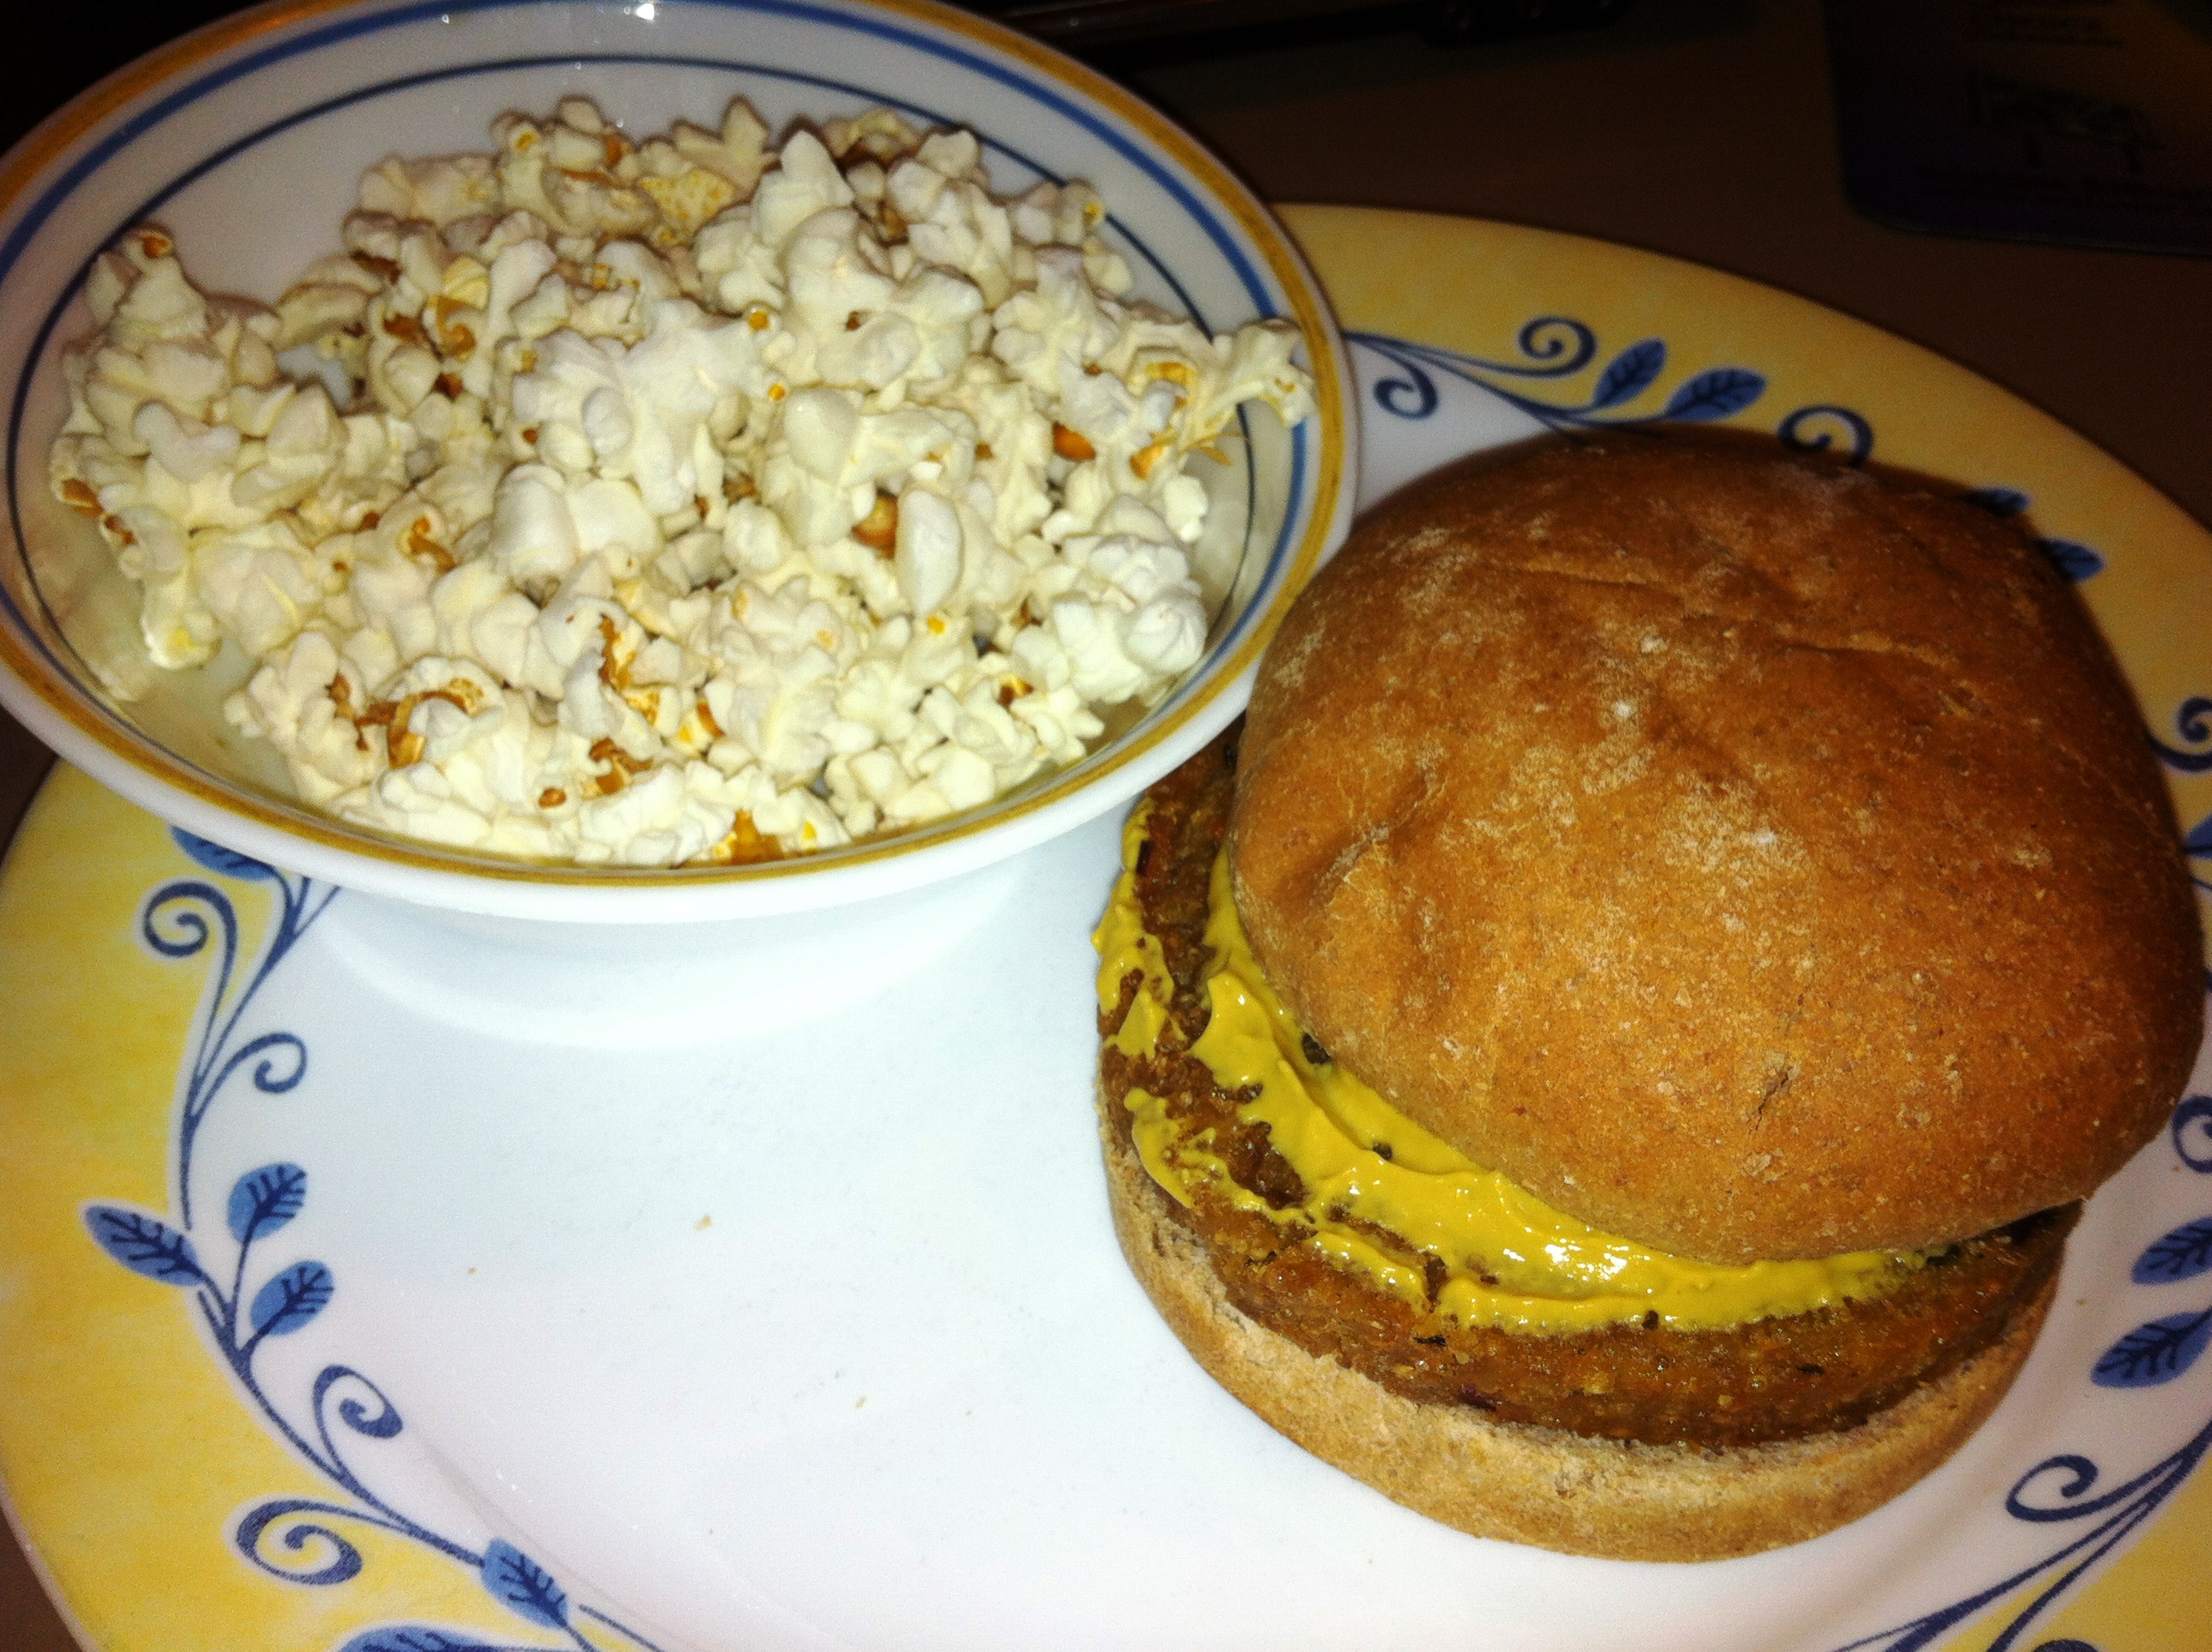 Whats for dinner 5 easy quick vegan meal ideas what i vegan quick and easy vegan meal ideas forumfinder Choice Image